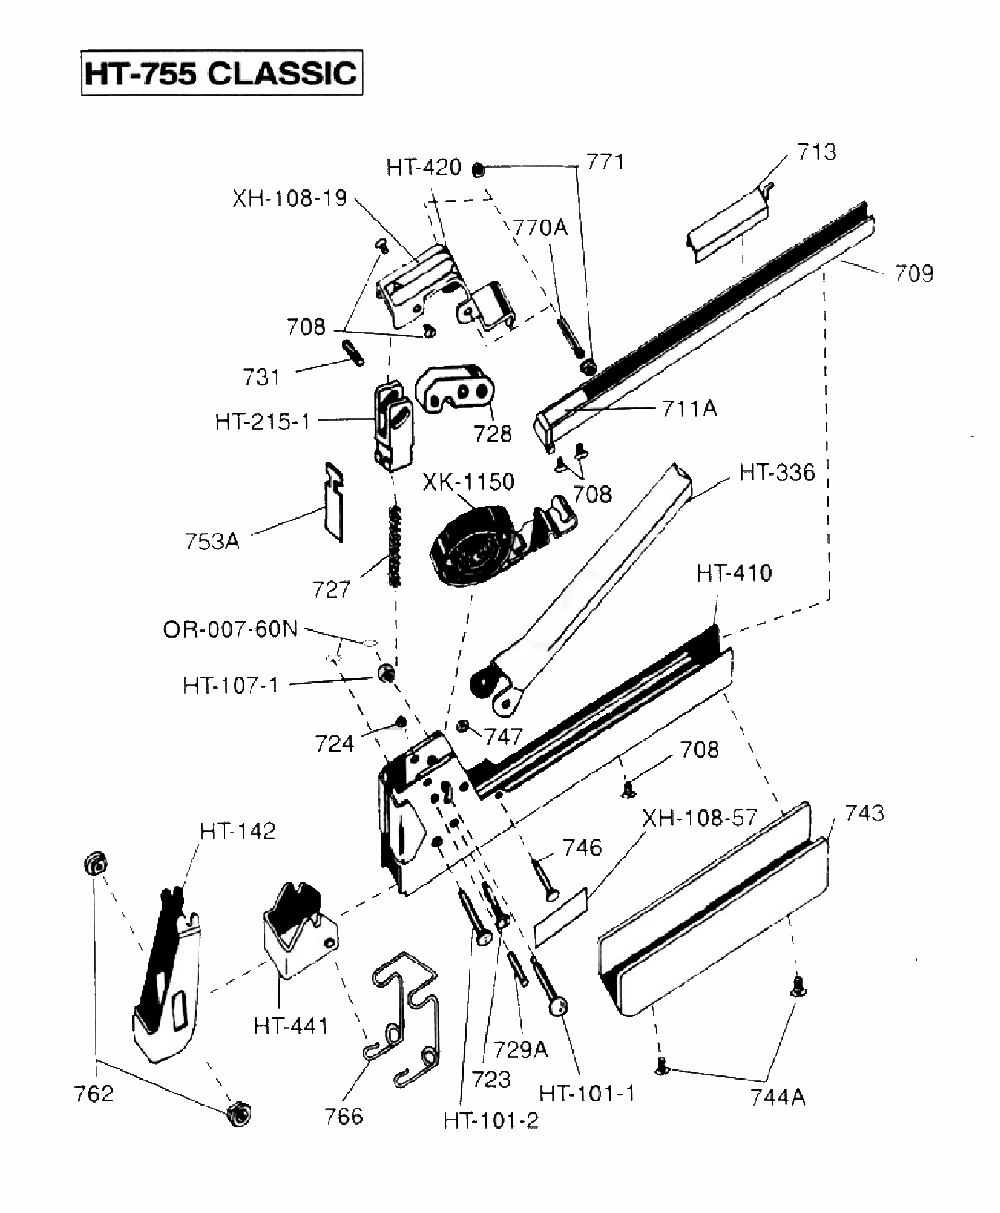 stapler with exploded assembly part list pictures to pin